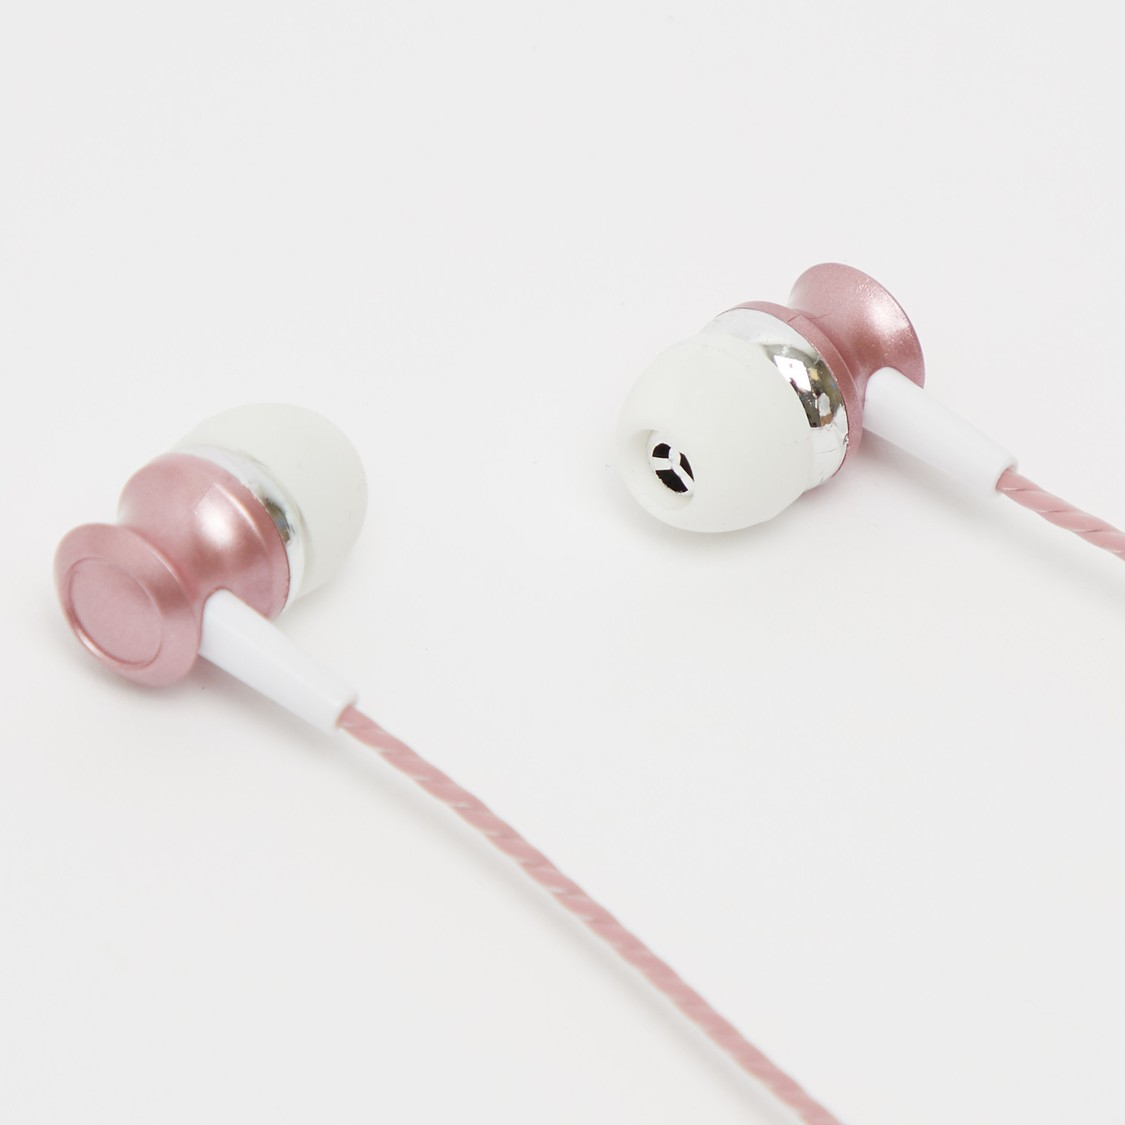 In-Ear Earphones with Mic